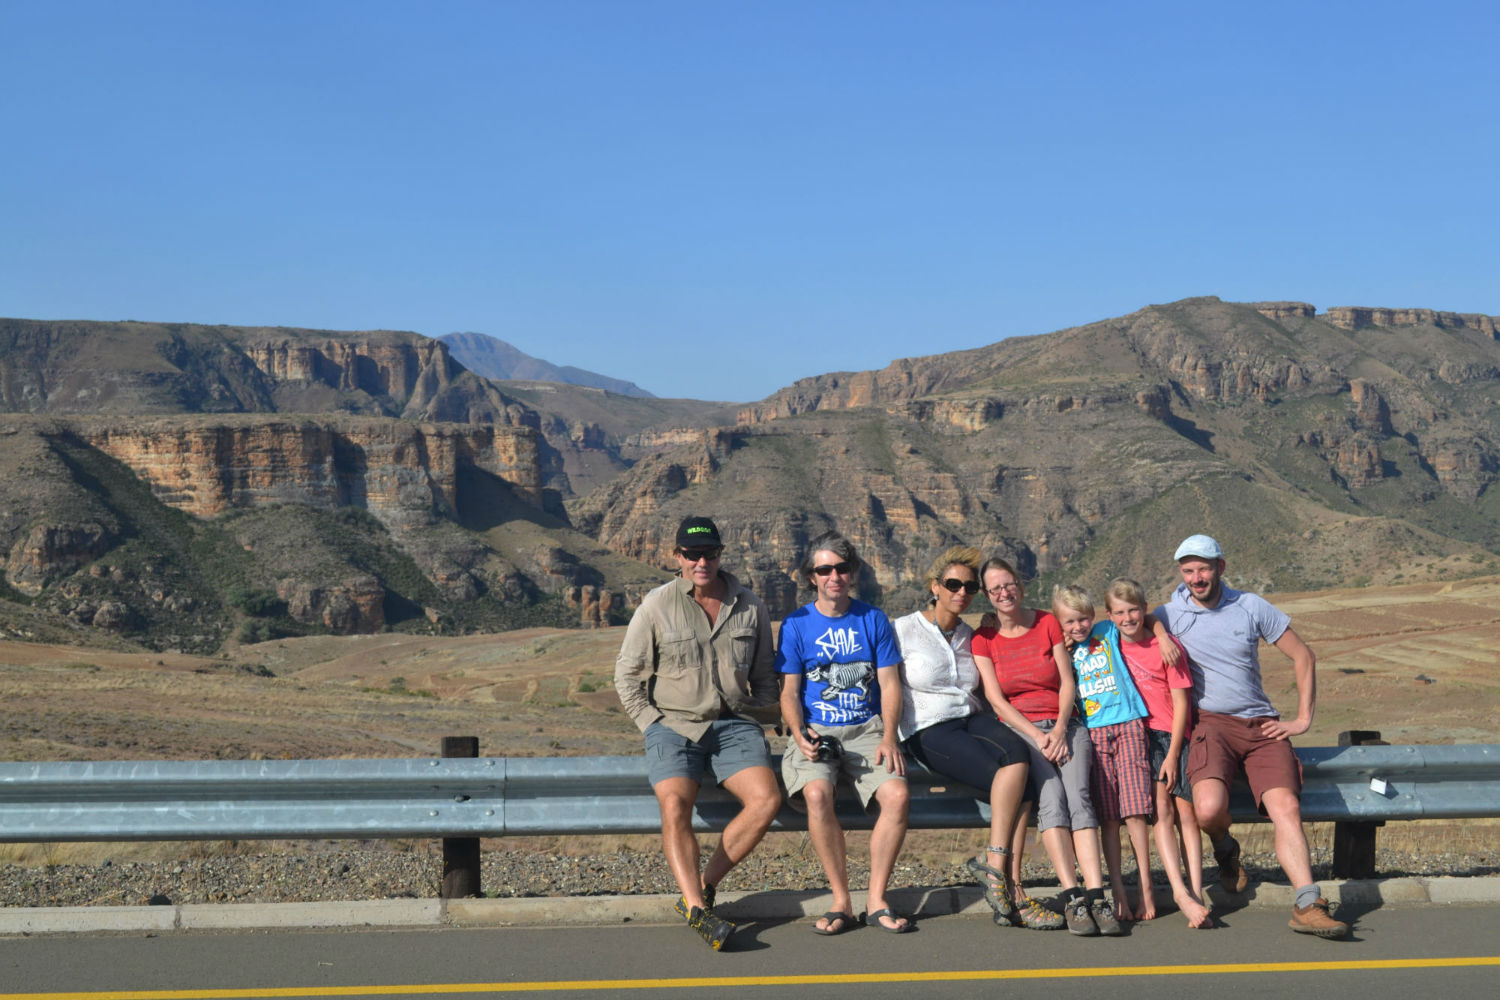 Chilling on the road with South Africa Overland 4x4 Tours